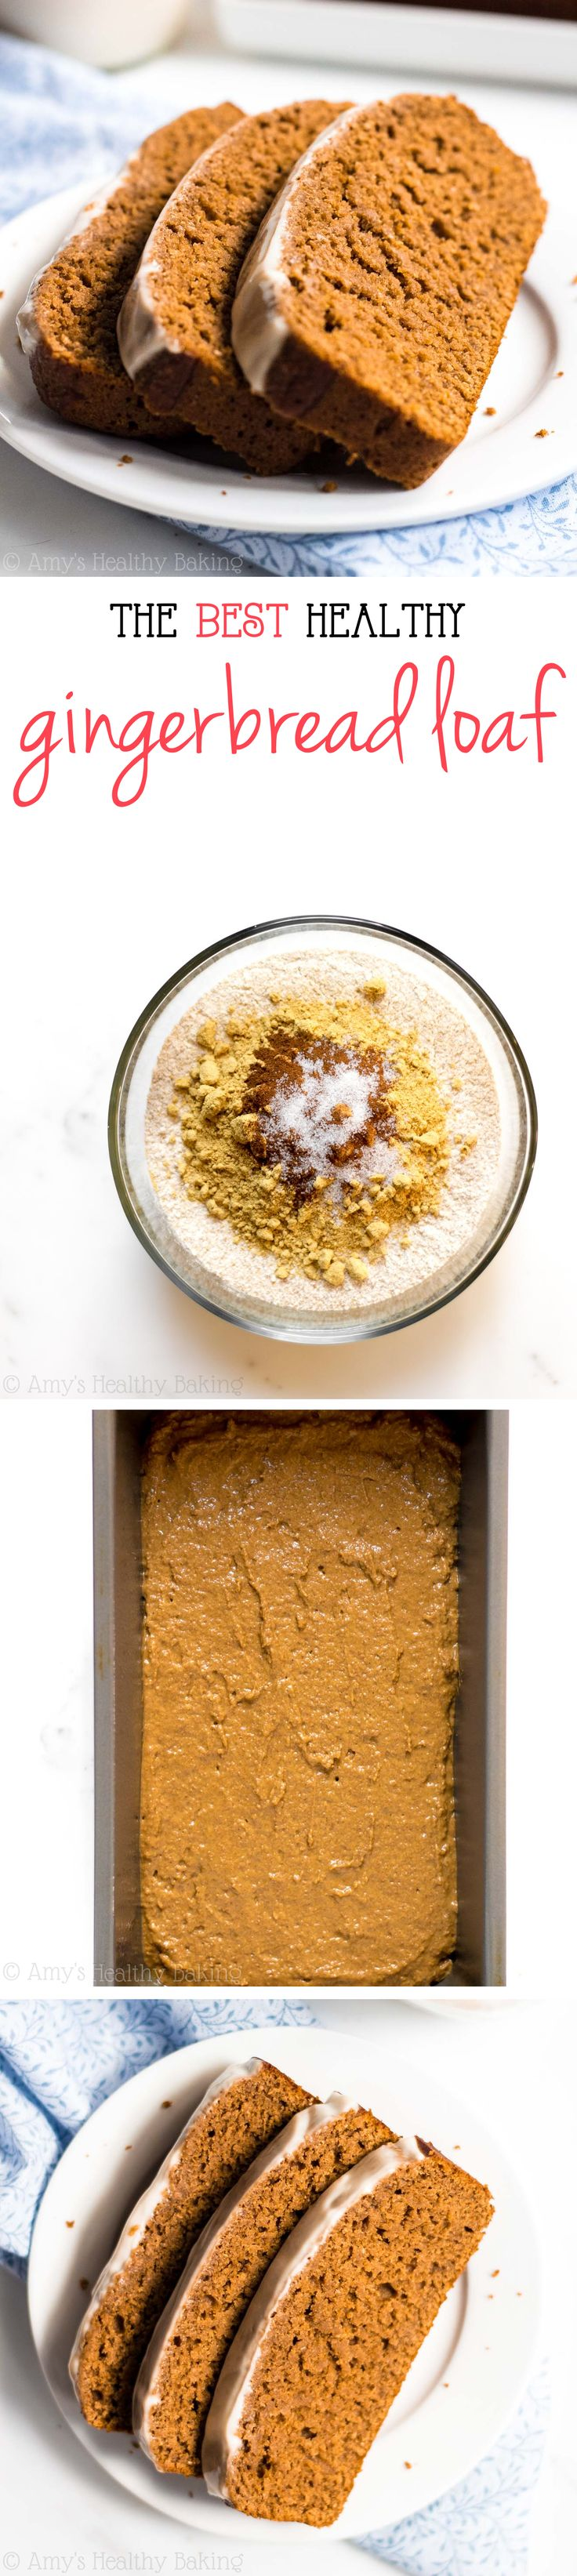 The BEST gingerbread recipe you'll ever try!! It tastes like dessert for breakfast - NOT healthy at all!